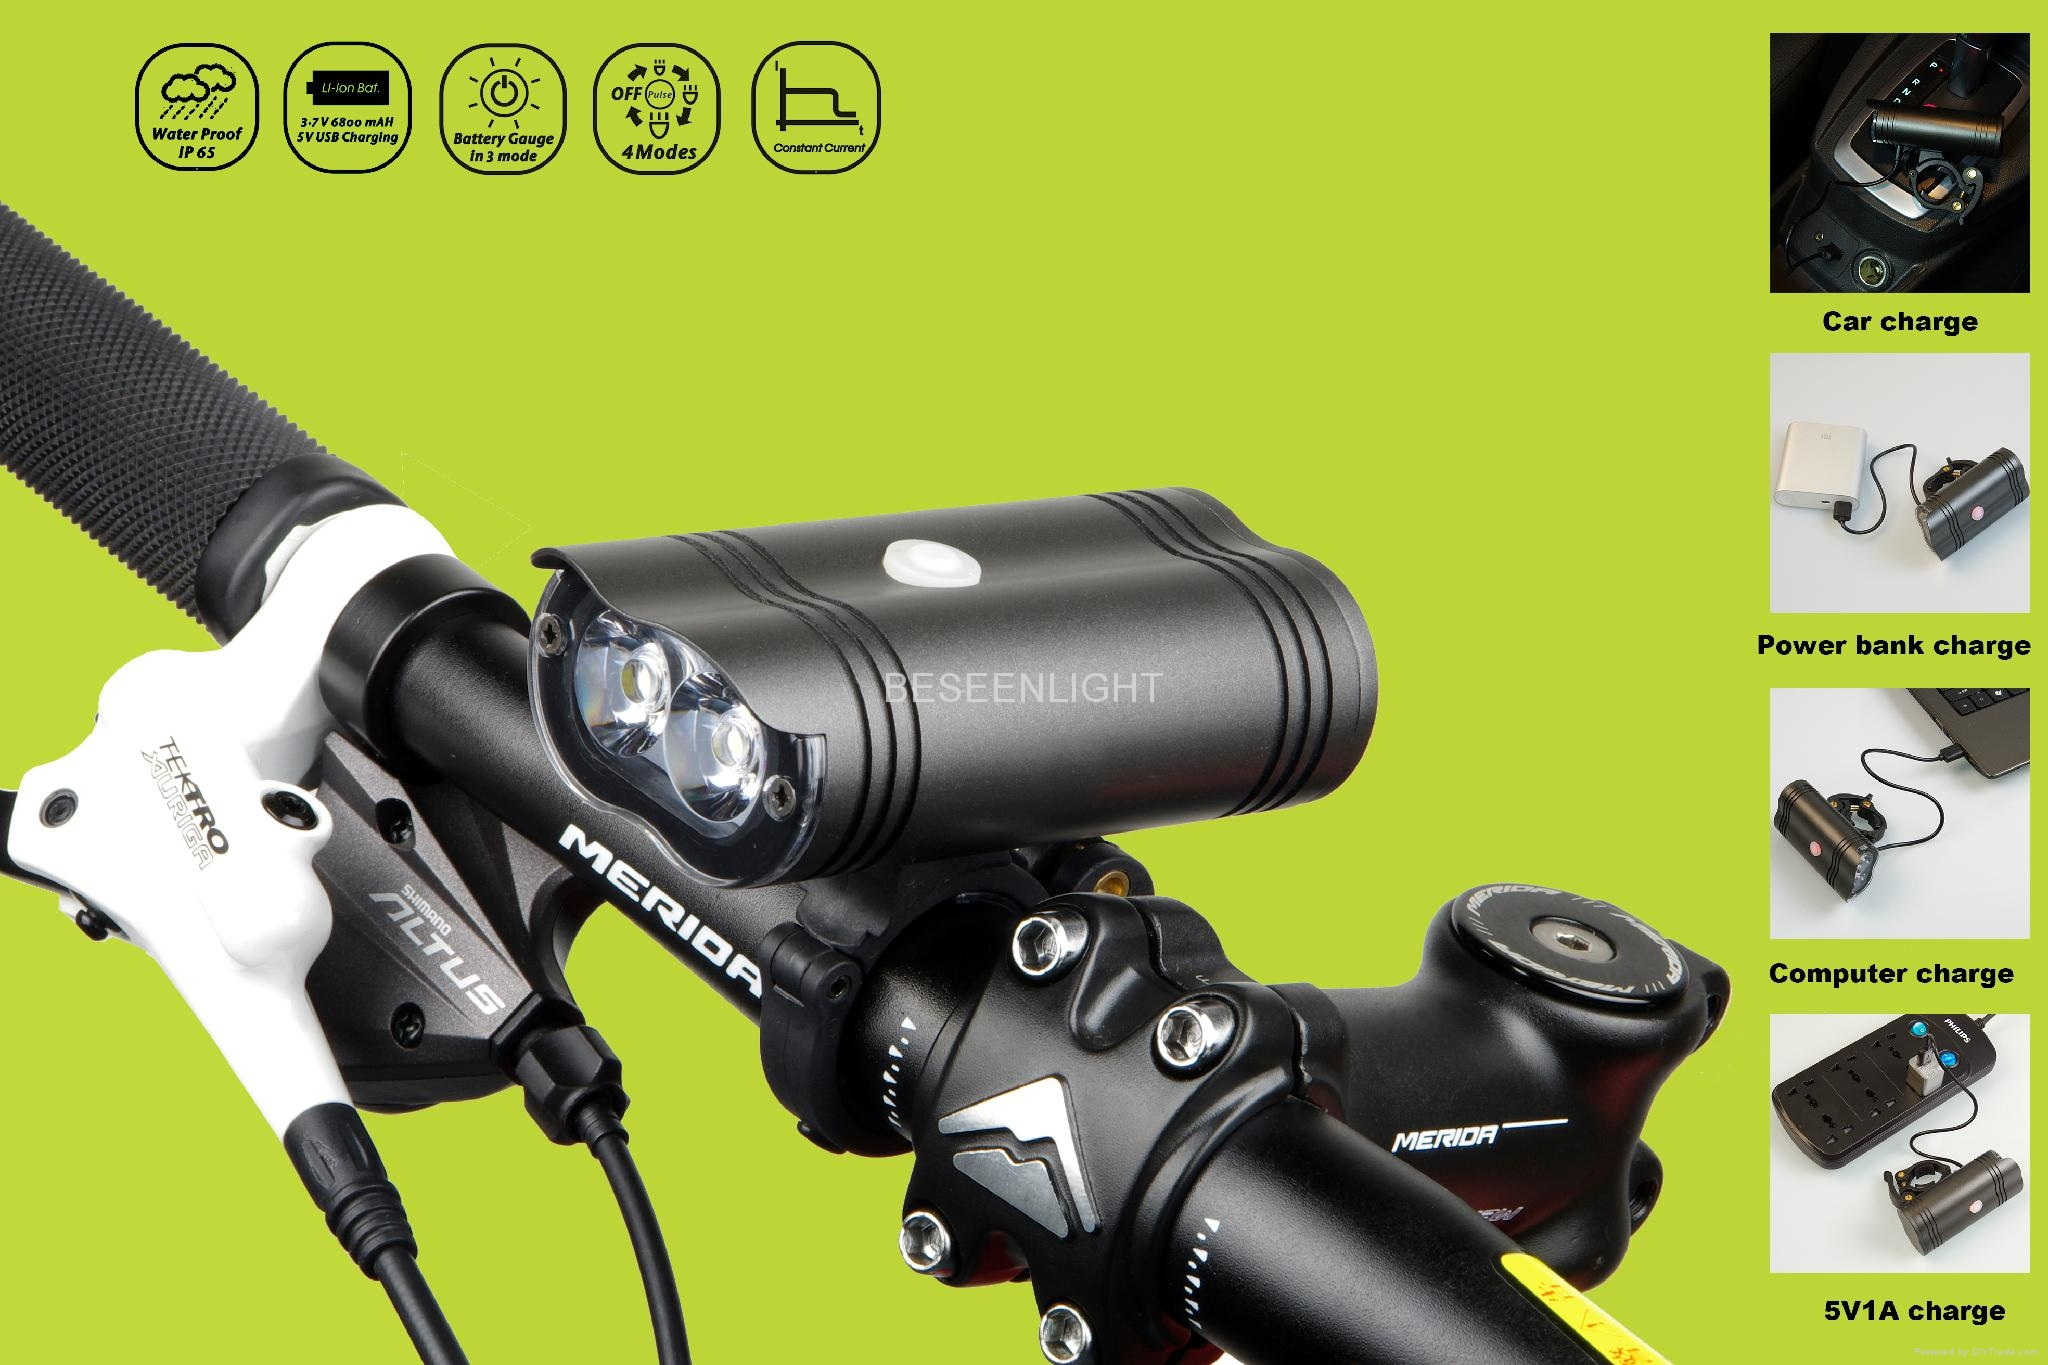 Pro road cycle light 1250lm USB charger 5